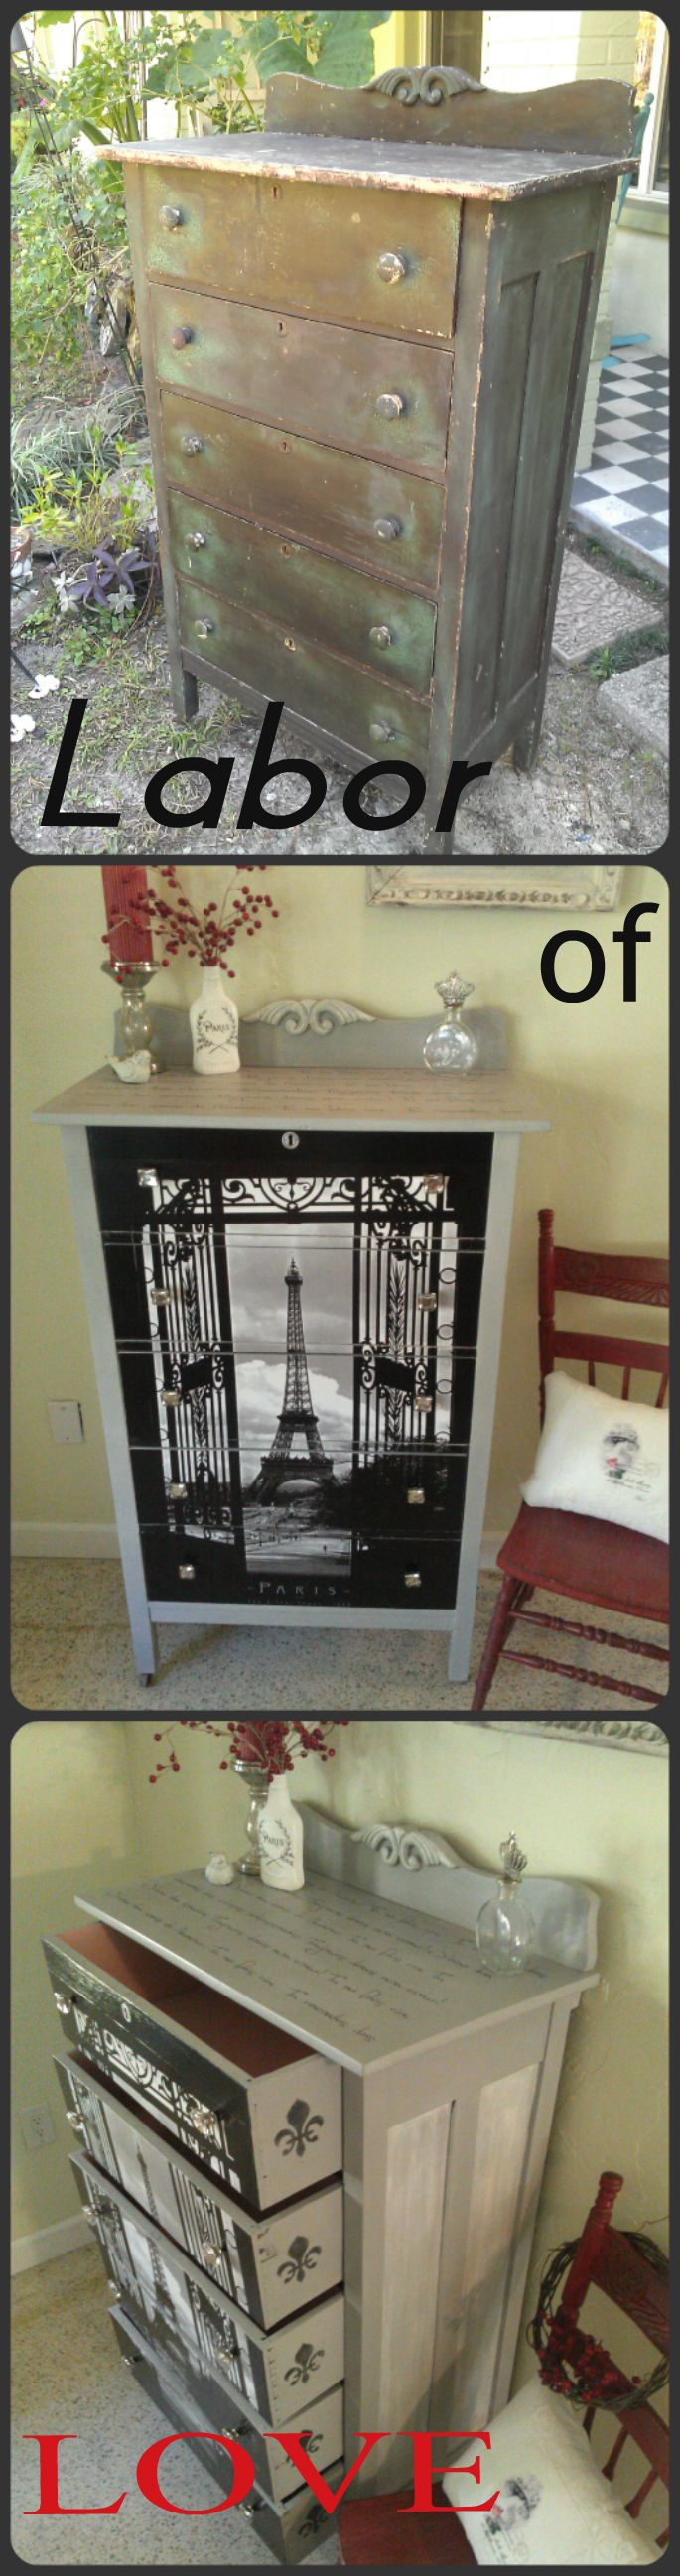 Vintage Tall Boy Chest,Decoupage Furniture,Annie Sloan Paris Grey with French Script and Eiffel Tower. Learn more at Right Up My Alley Design here https://www.etsy.com/listing/222466175/shabby-french-eiffel-tower-chest-dresser?ref=shop_home_feat_3